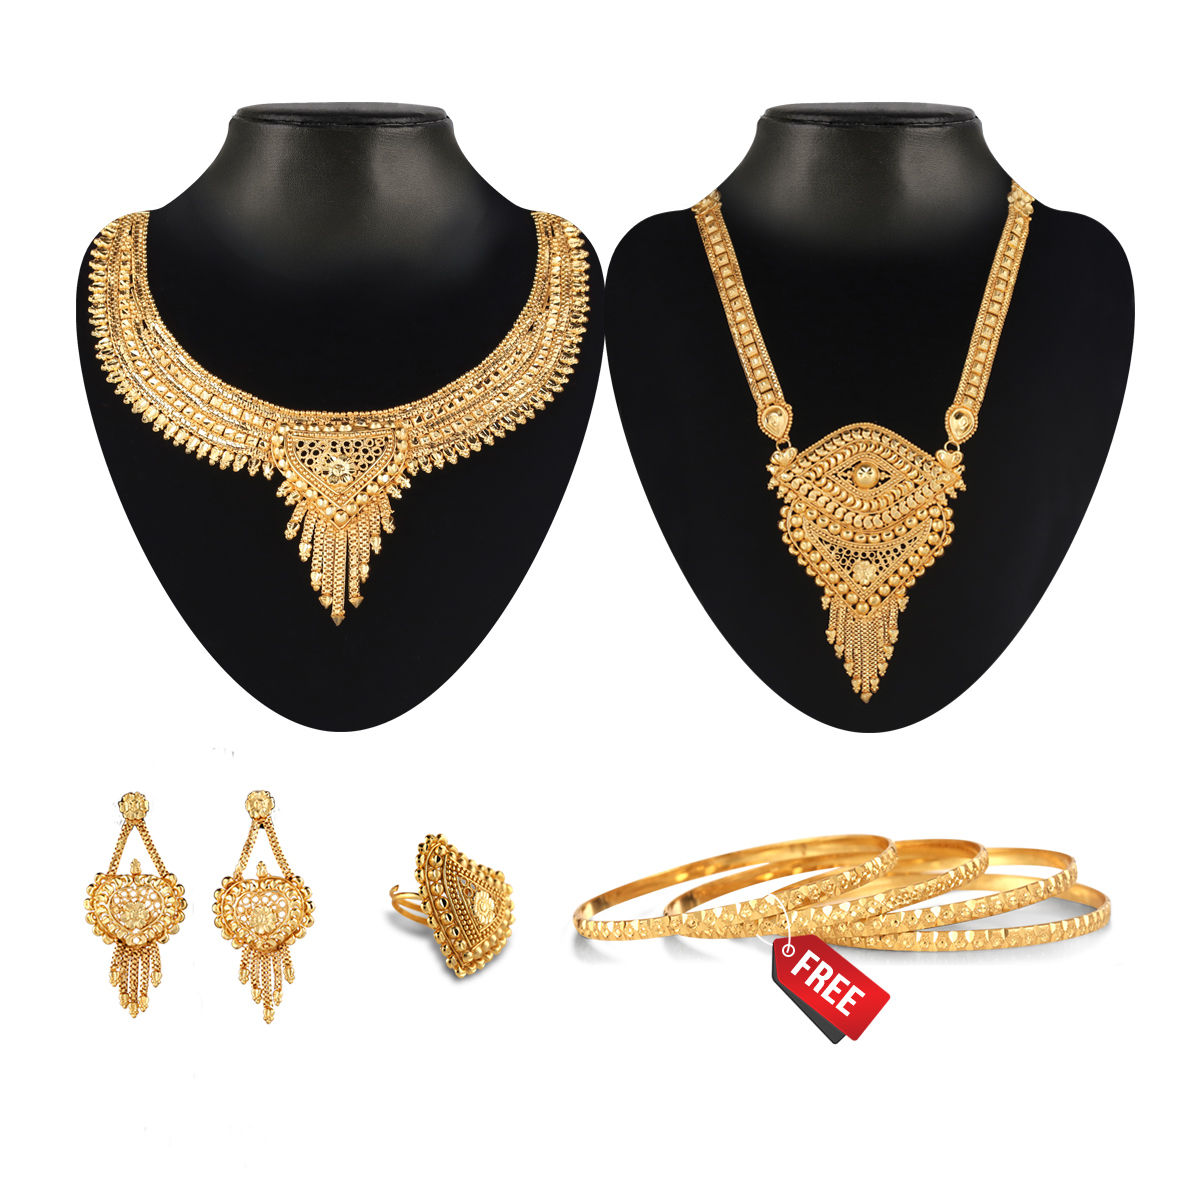 2ce86e49c Buy Sumangali Gold Jewellery Collection Online at Best Price in India on  Naaptol.com